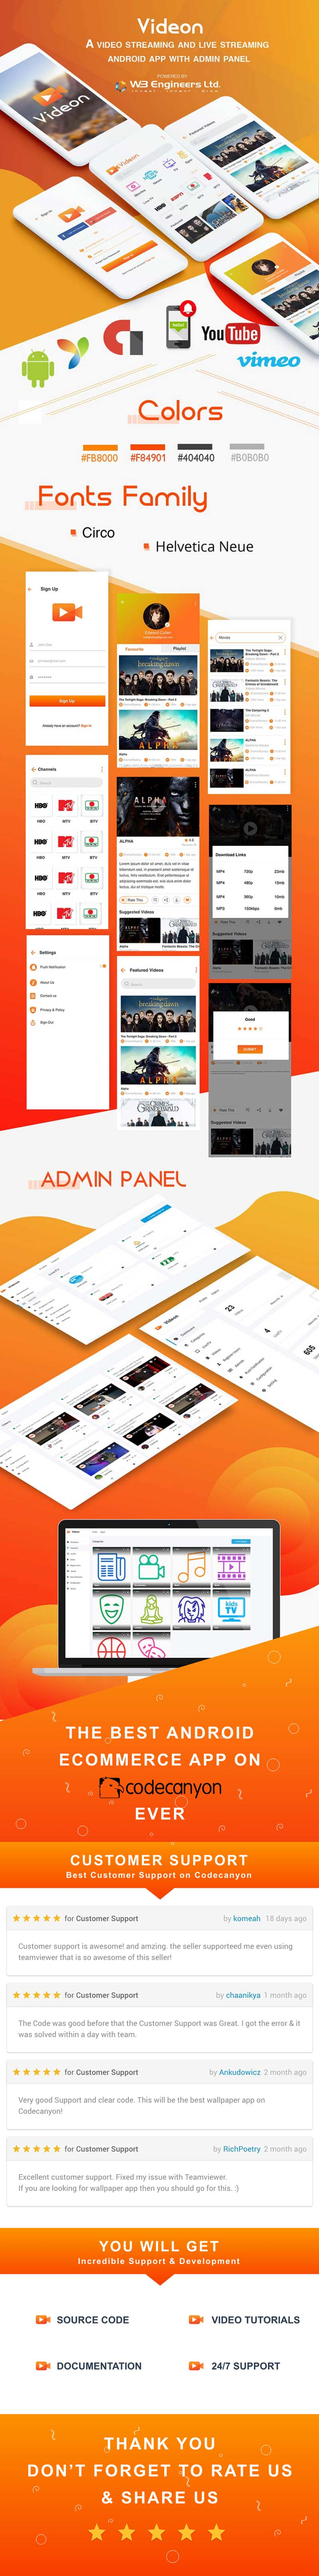 Videon - A video streaming android app with admin panel - 7